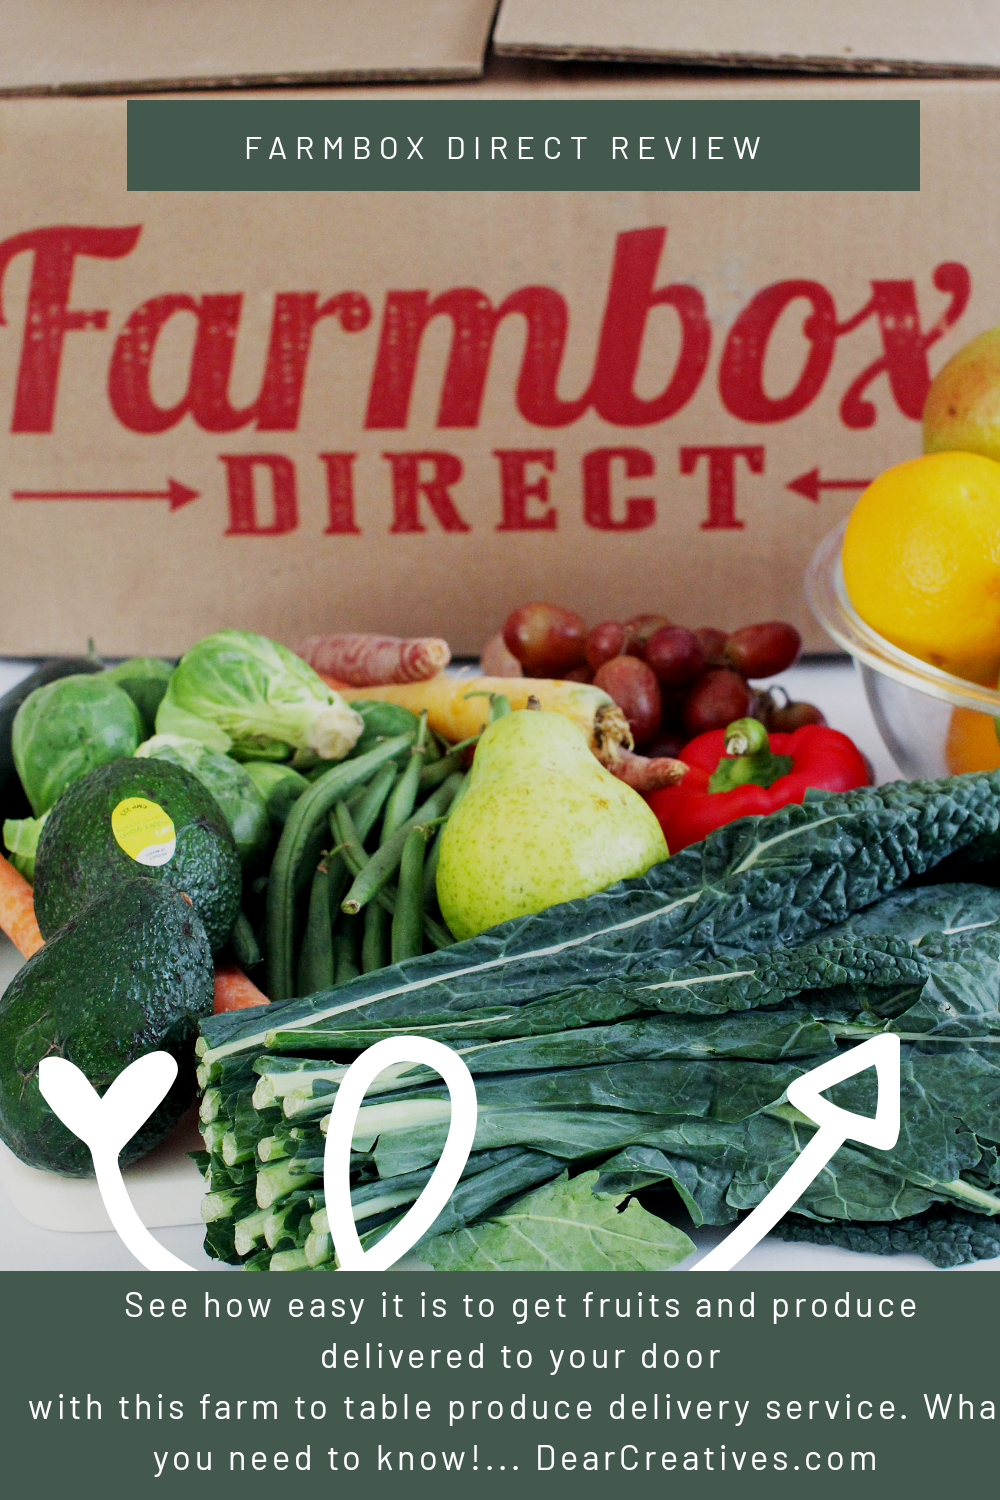 Farmbox Direct - Review and experience with using a produce delivery service. DearCreatives.com